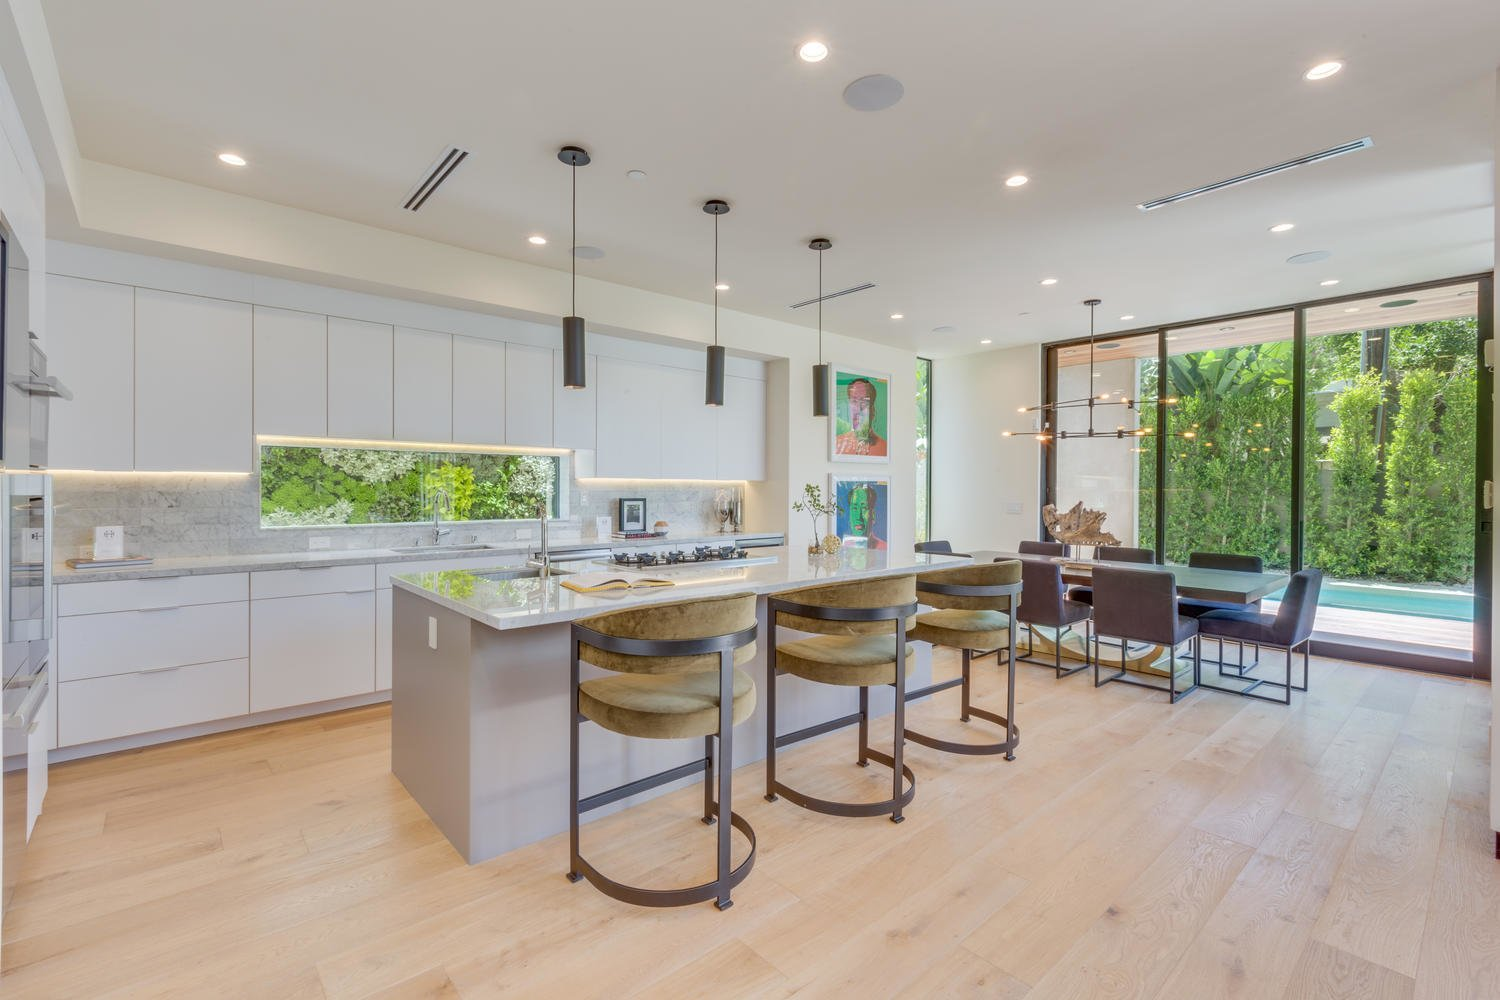 Kitchen, Marble Counter, White Cabinet, Marble Backsplashe, Light Hardwood Floor, Ceiling Lighting, Accent Lighting, Pendant Lighting, Recessed Lighting, Refrigerator, Wall Oven, Dishwasher, Microwave, Ice Maker, Cooktops, Wine Cooler, and Drop In Sink Kitchen/Dining Area  The Rosewood Residence